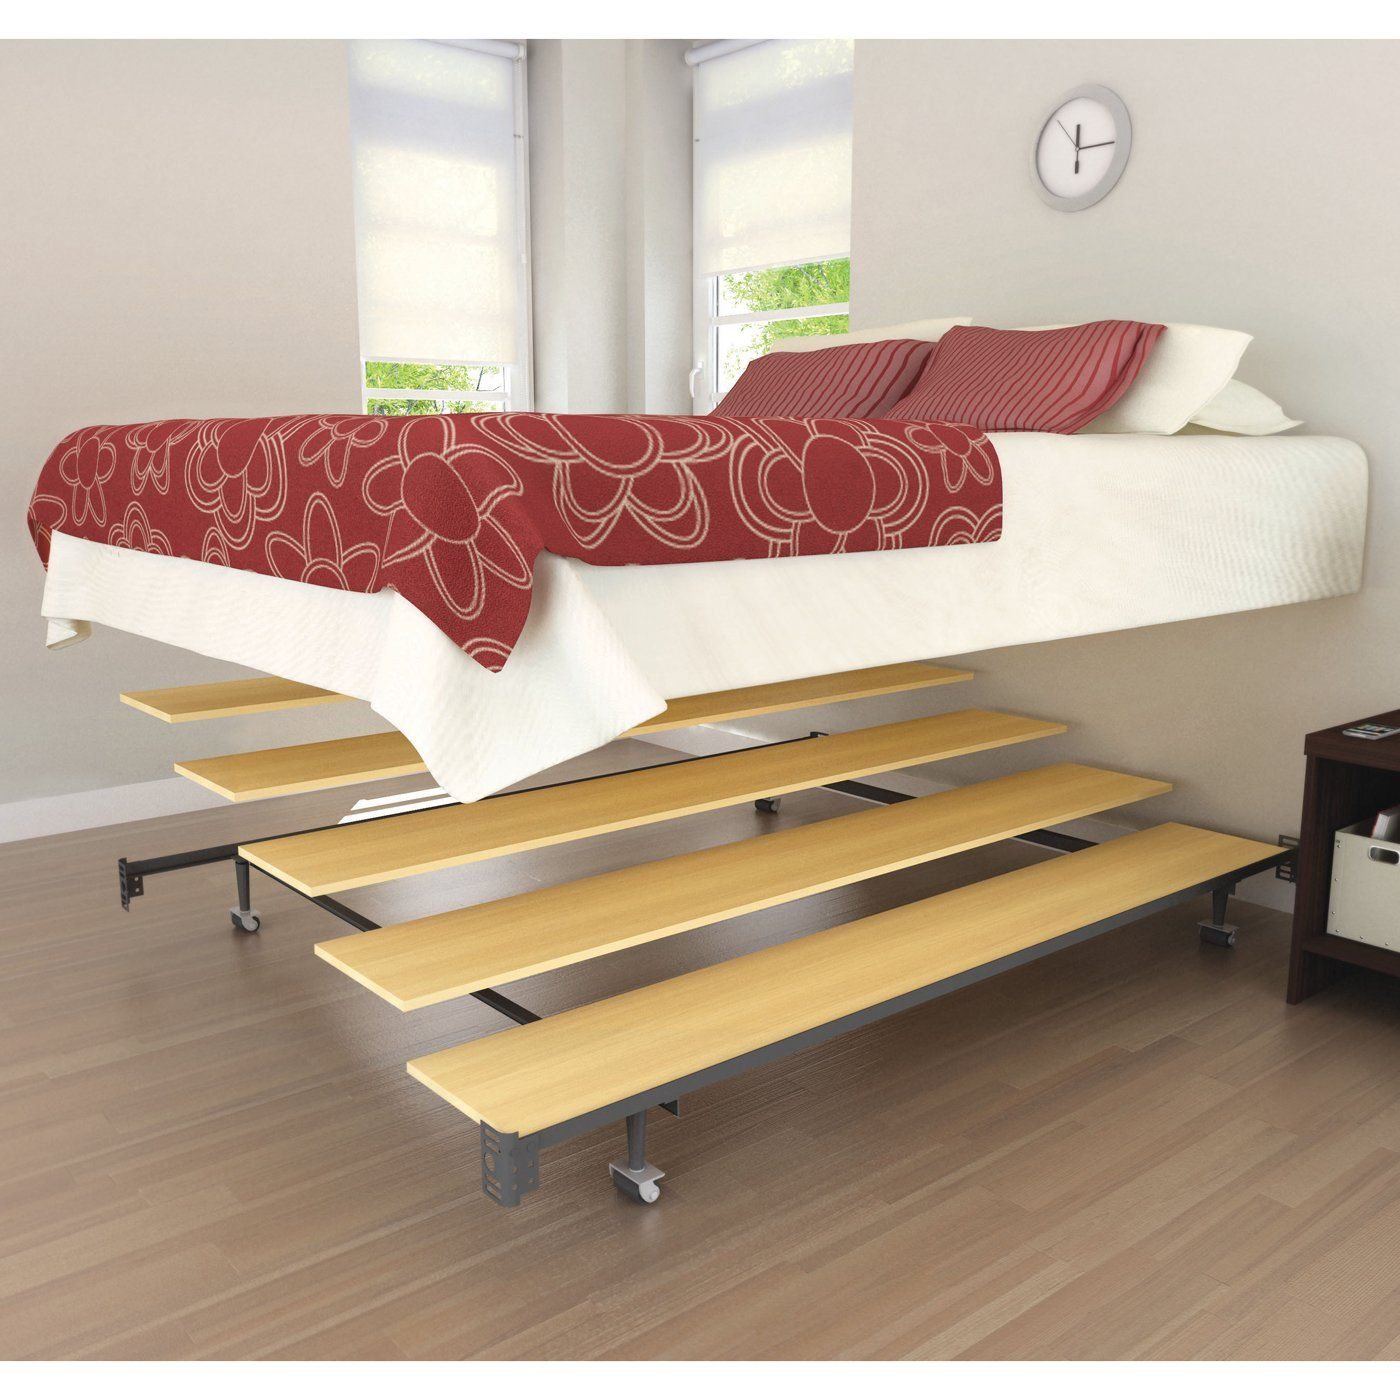 ideas frame nice and futons decoration exclusive set size futon capricornradio mattress queen best beds